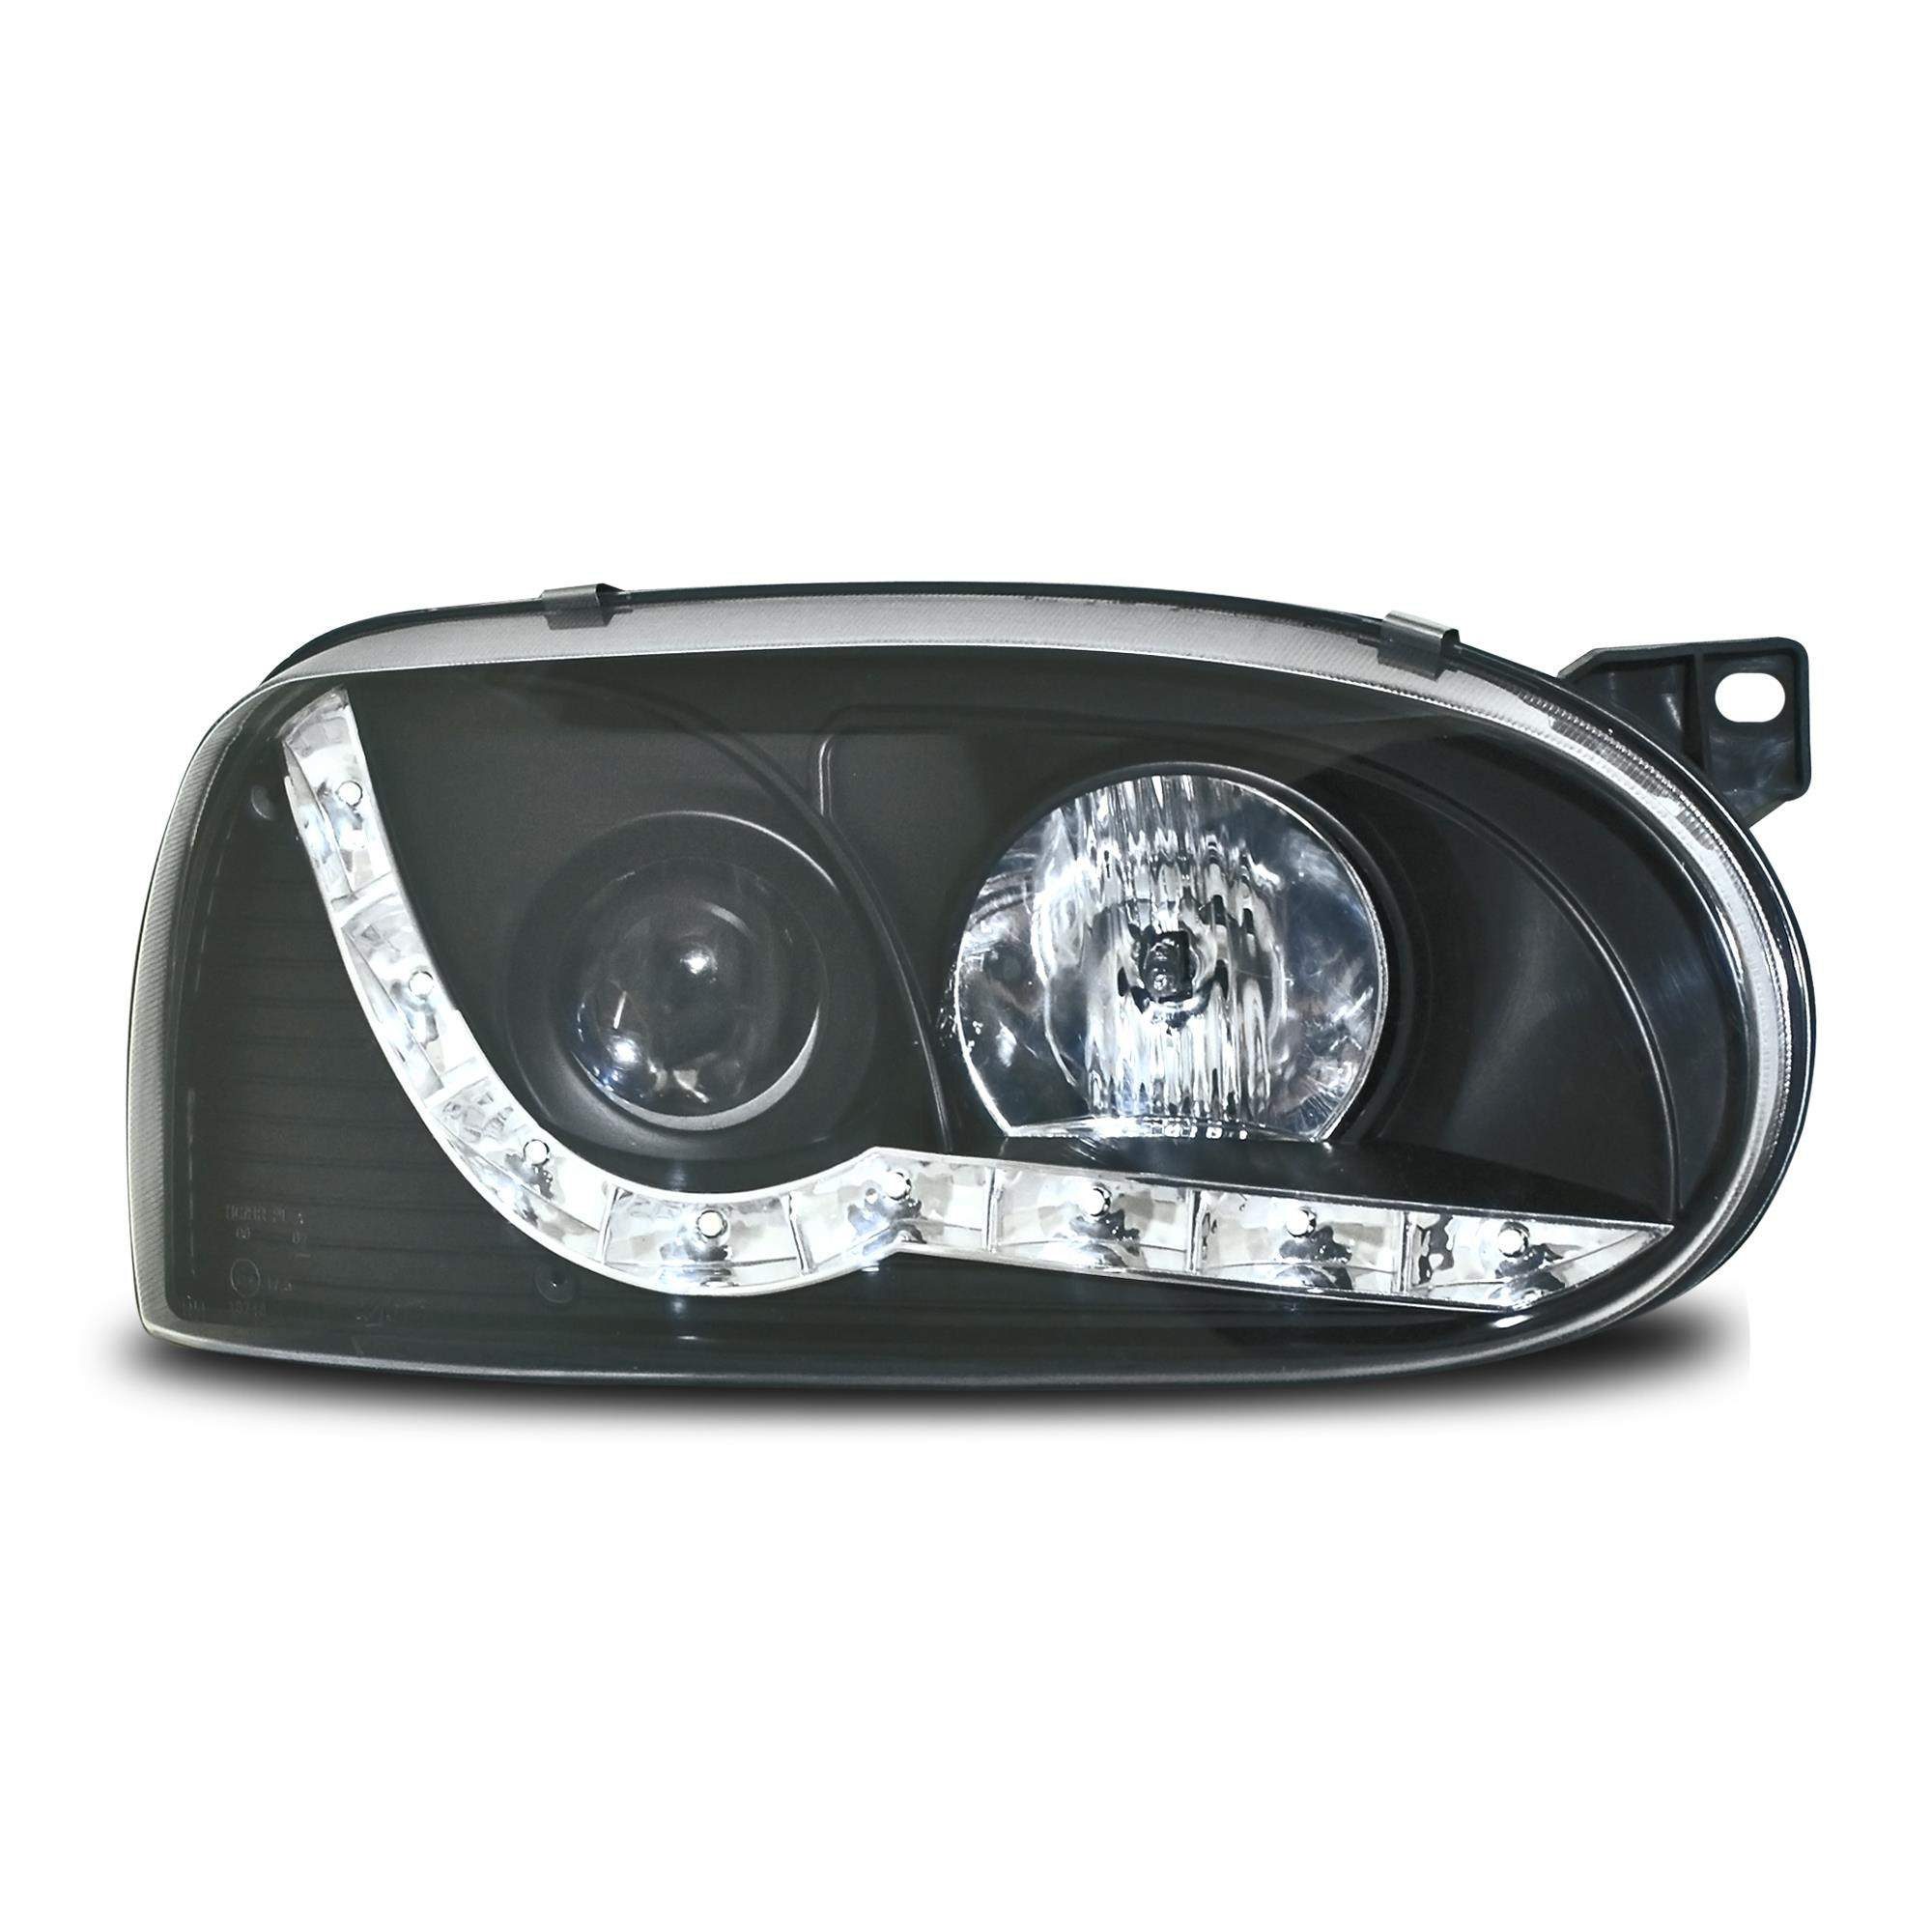 vw golf 3 1h led tagfahrlicht tfl optik klarglas. Black Bedroom Furniture Sets. Home Design Ideas